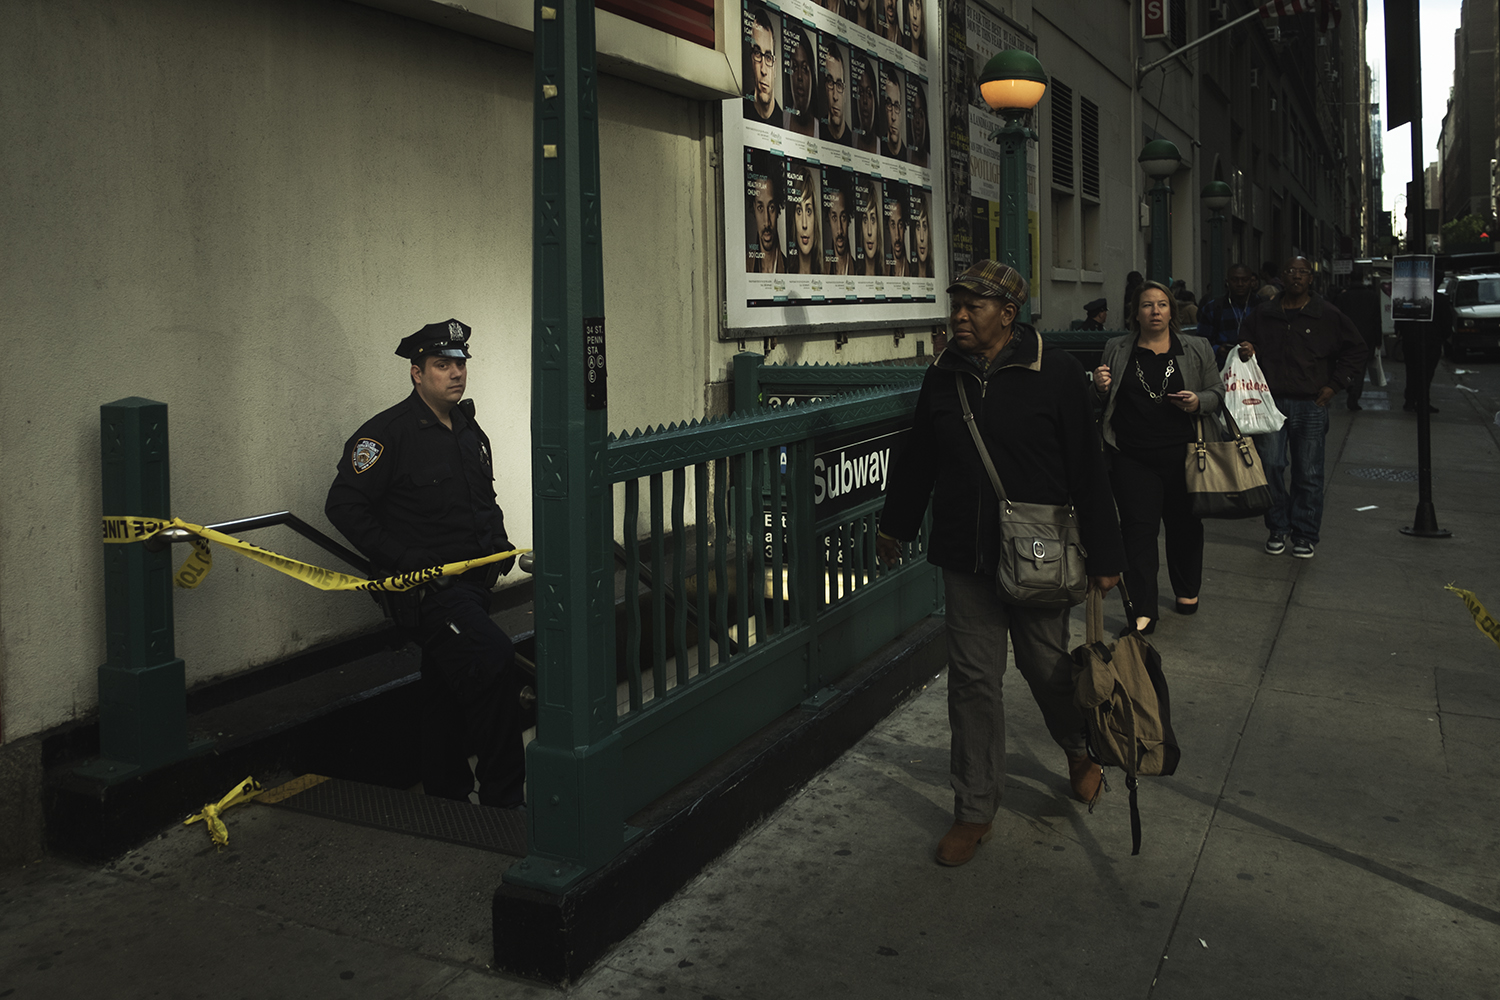 a crime scene regards to an earlier gun shooting, left 1 dead and 2 badly injured at Penn Station in Manhattan, NY.2015   ©    Go Nakamura     photography